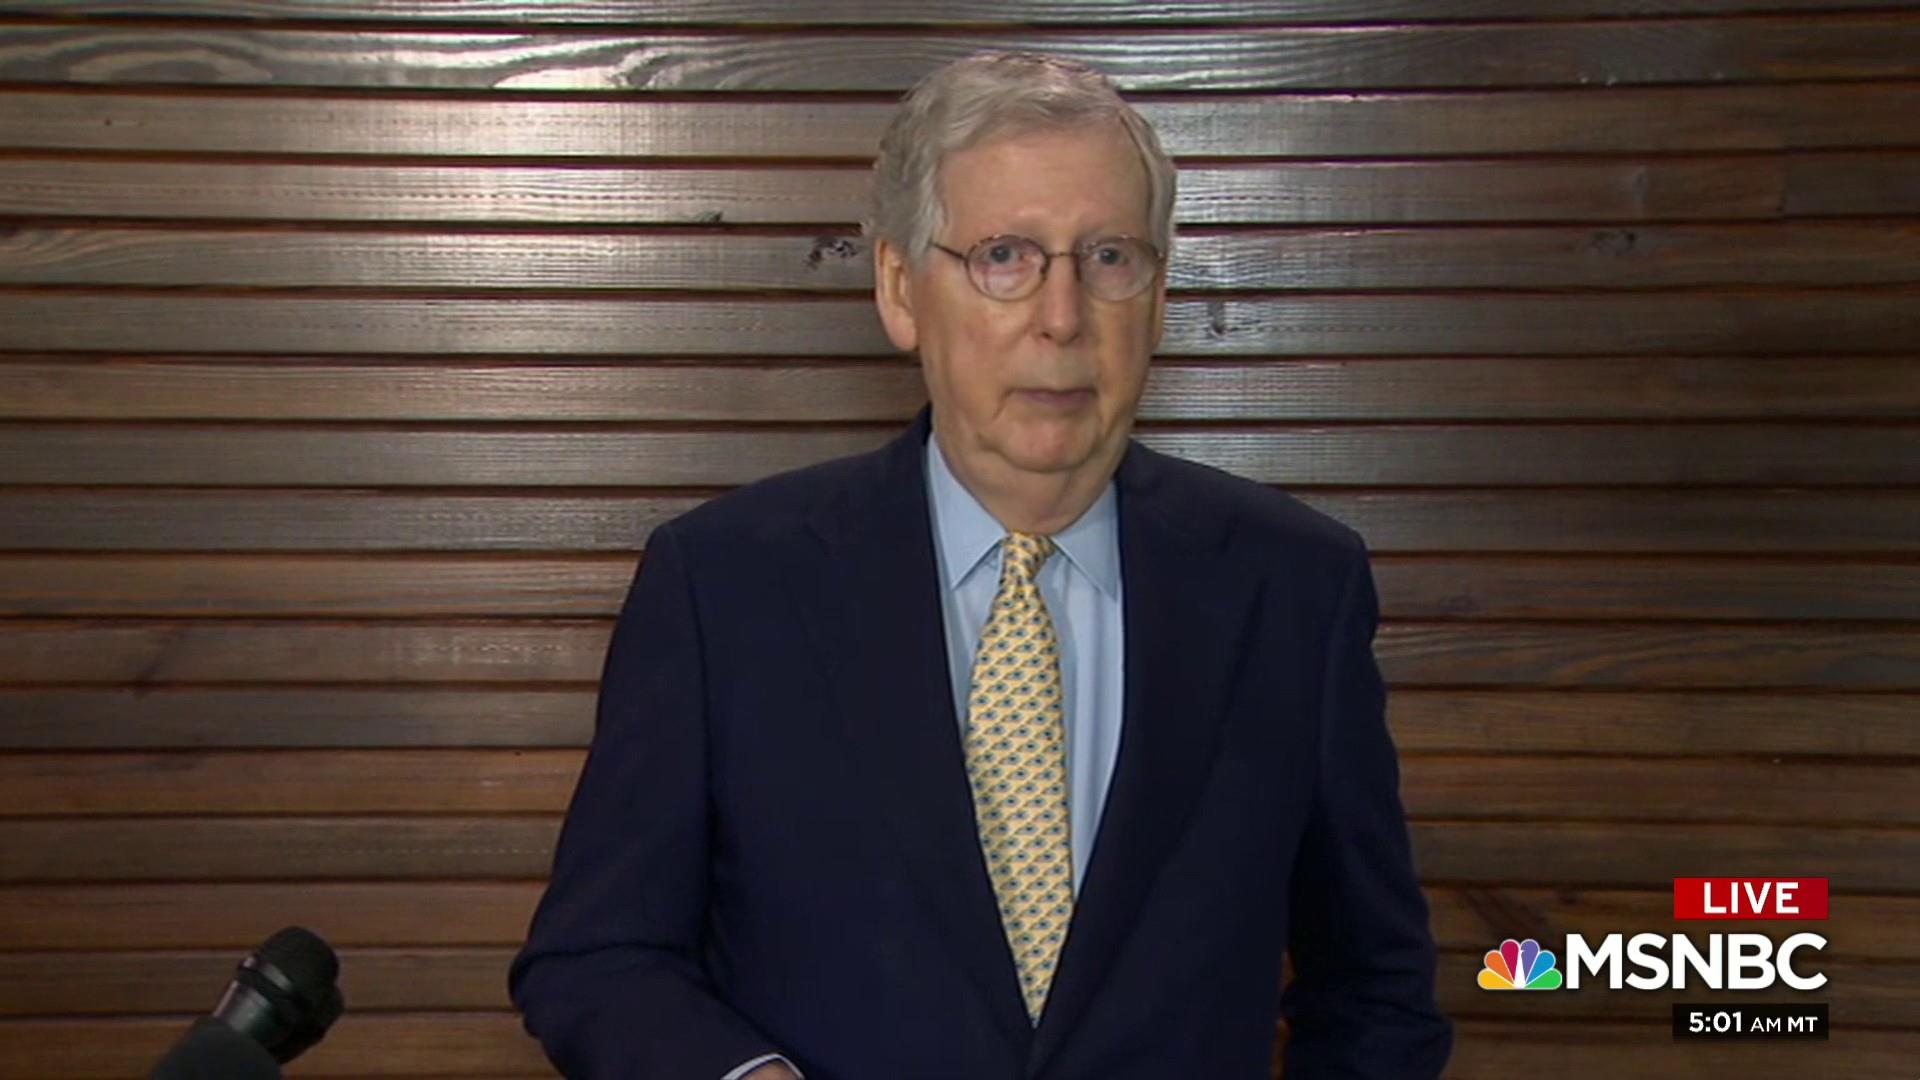 Sen. McConnell to say 'case closed' on Mueller